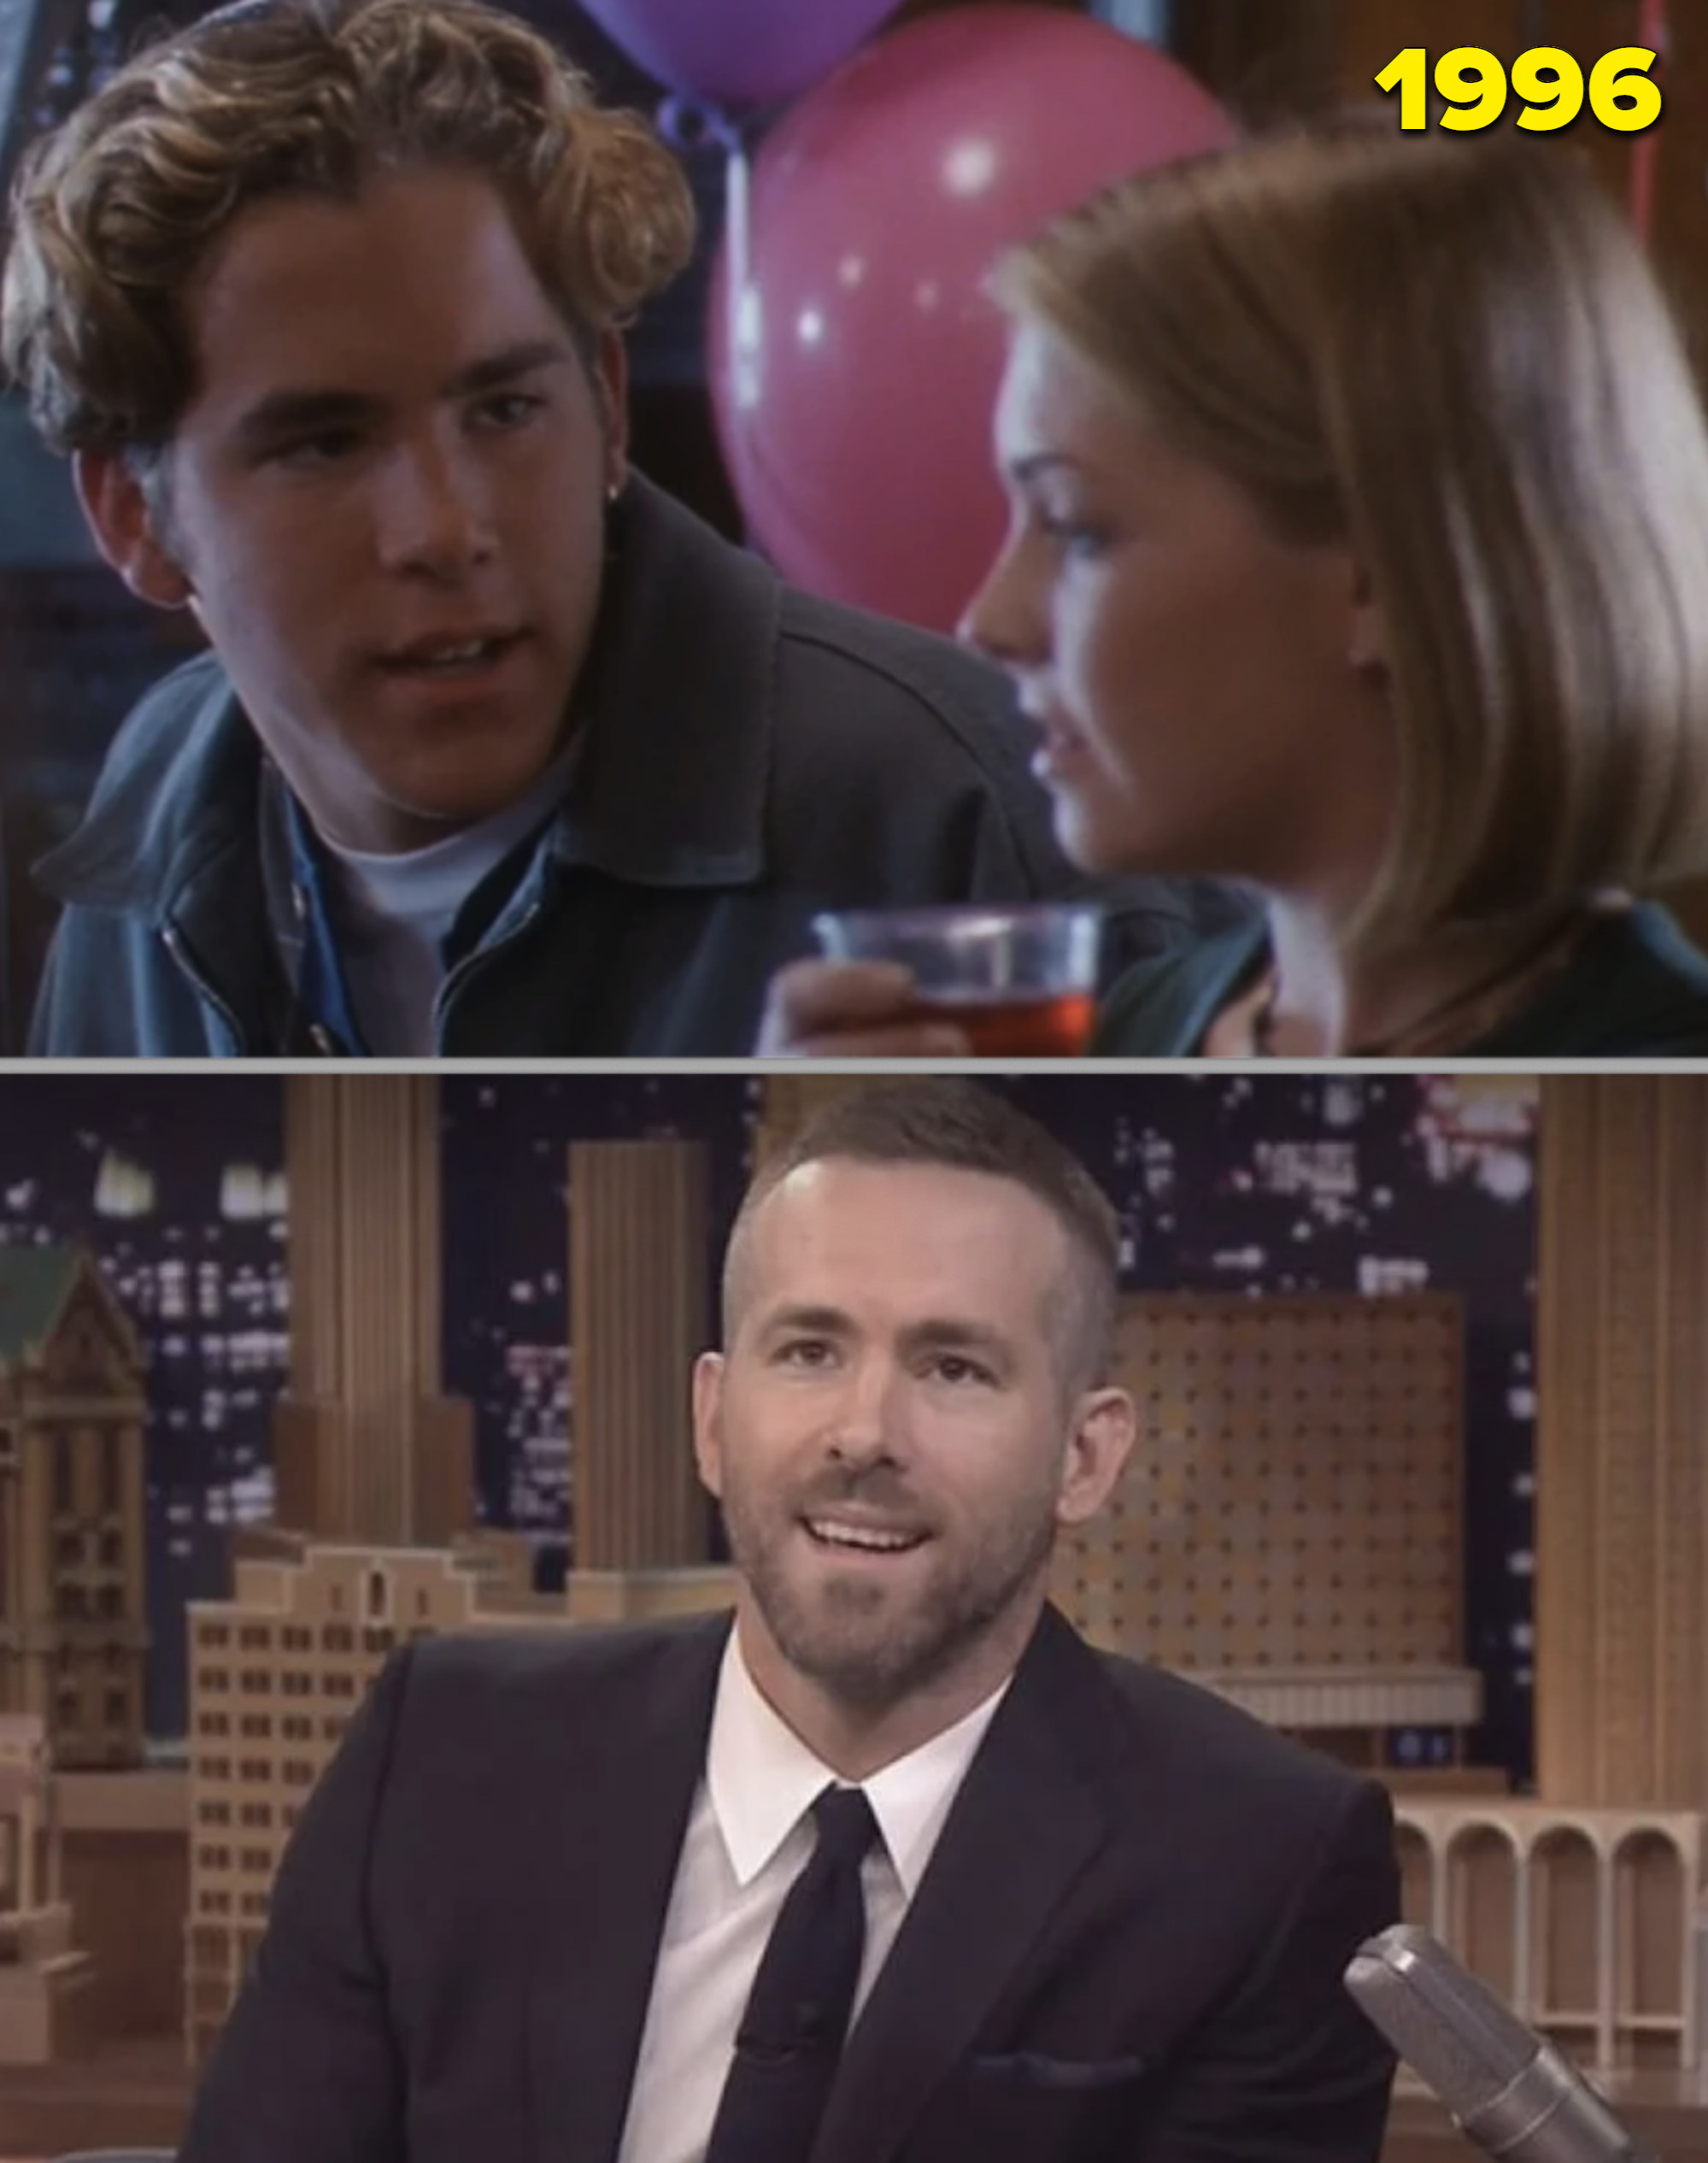 Ryan Reynold with Sabrina vs. him as an adult being interviewed